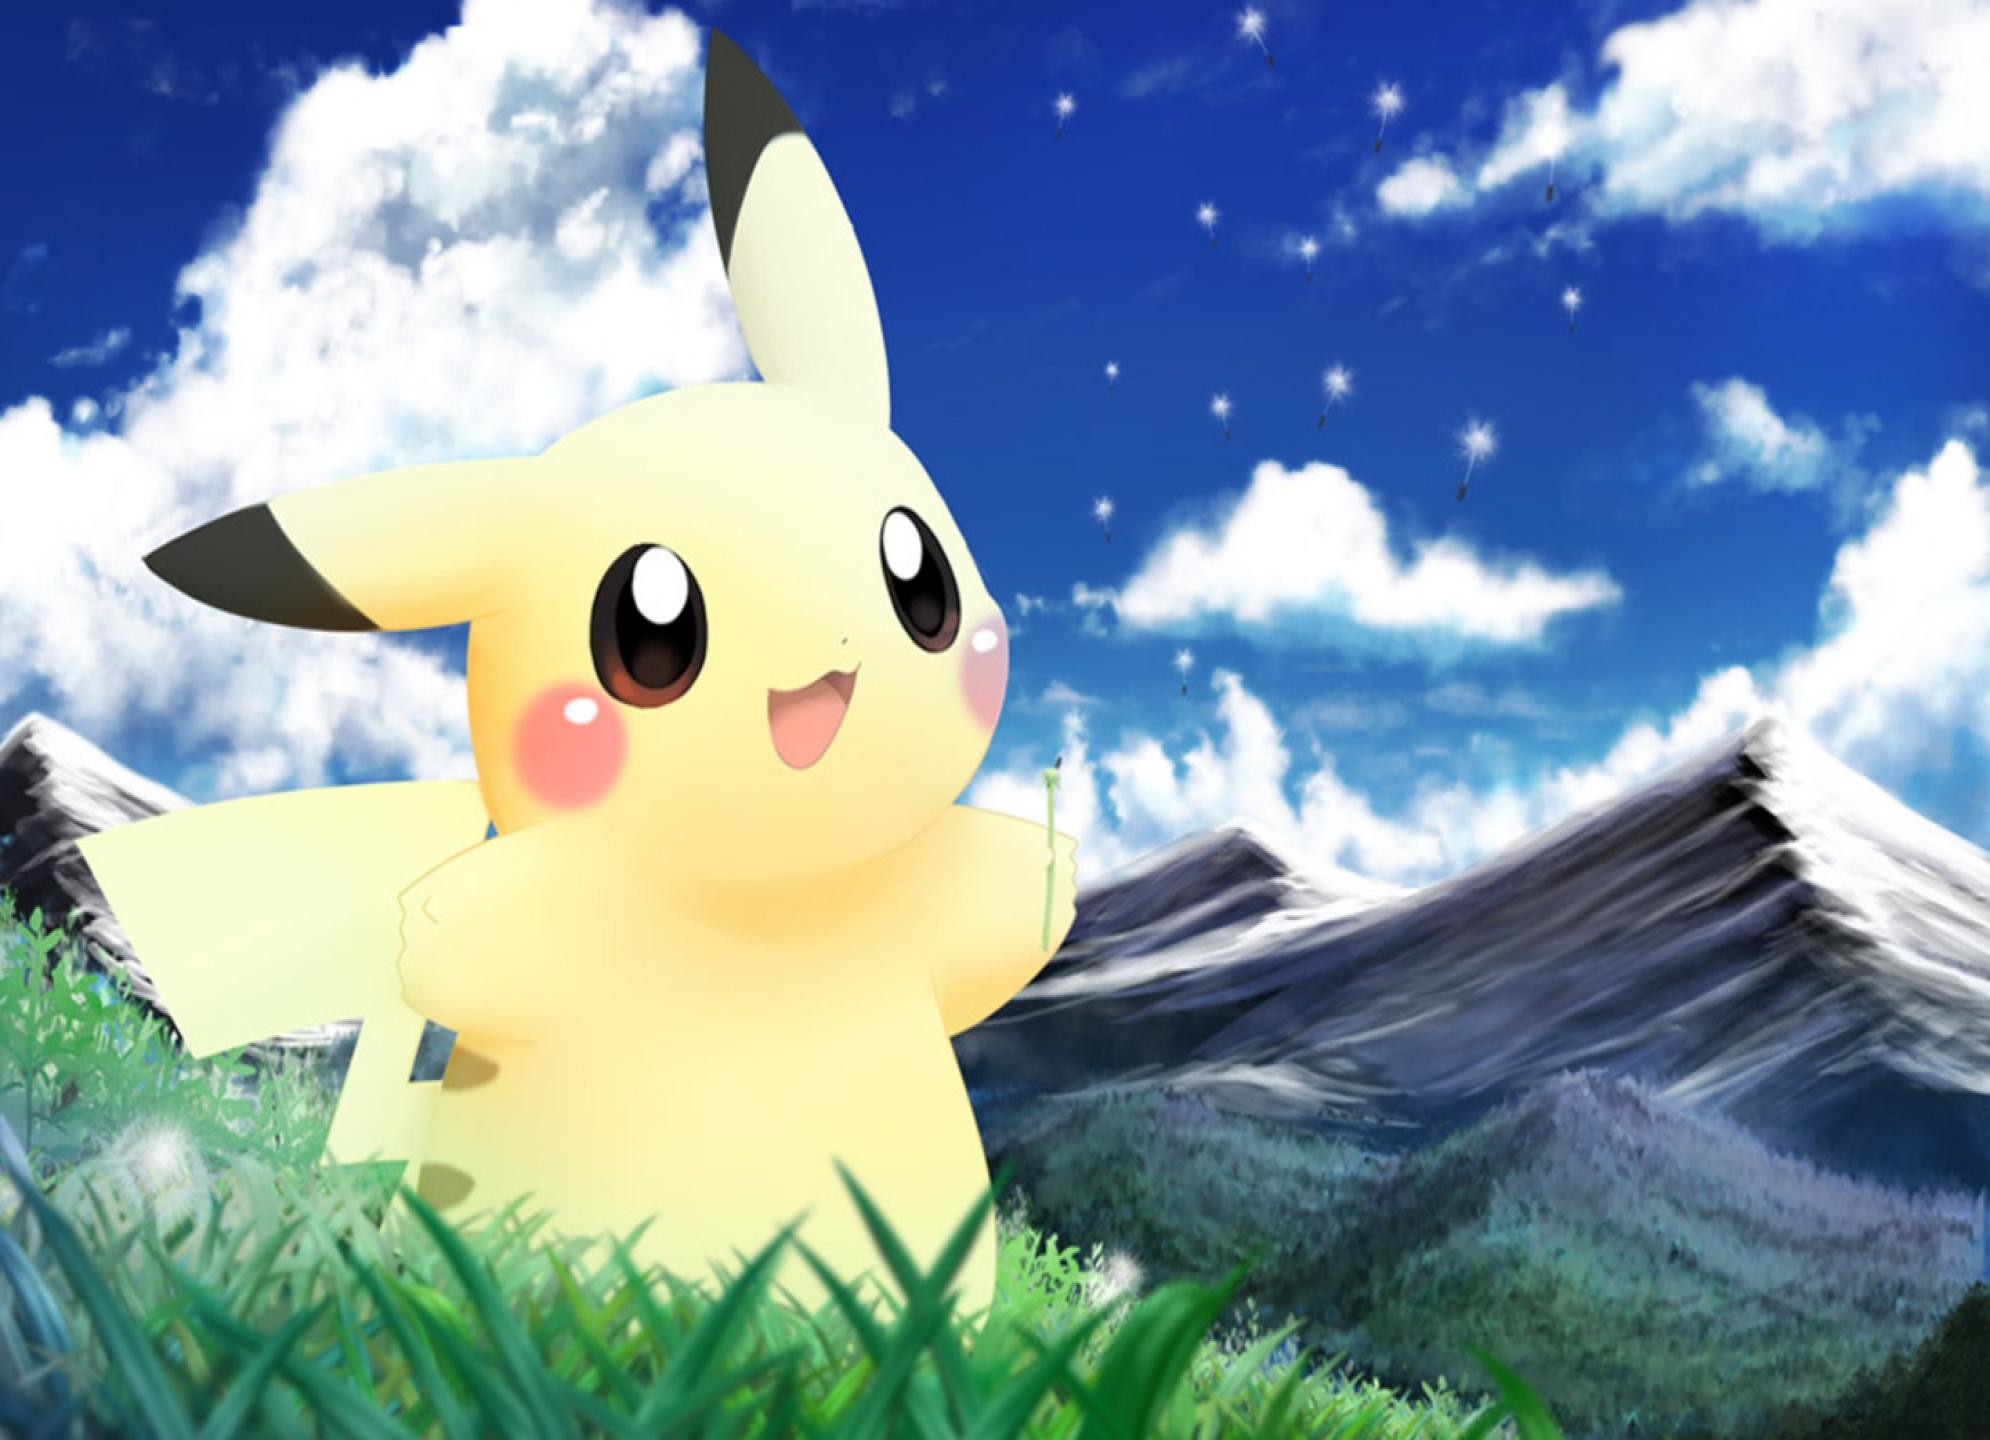 HD Wallpaper and background photos of Pikachu Wallpaper for fans of Pikachu  images.